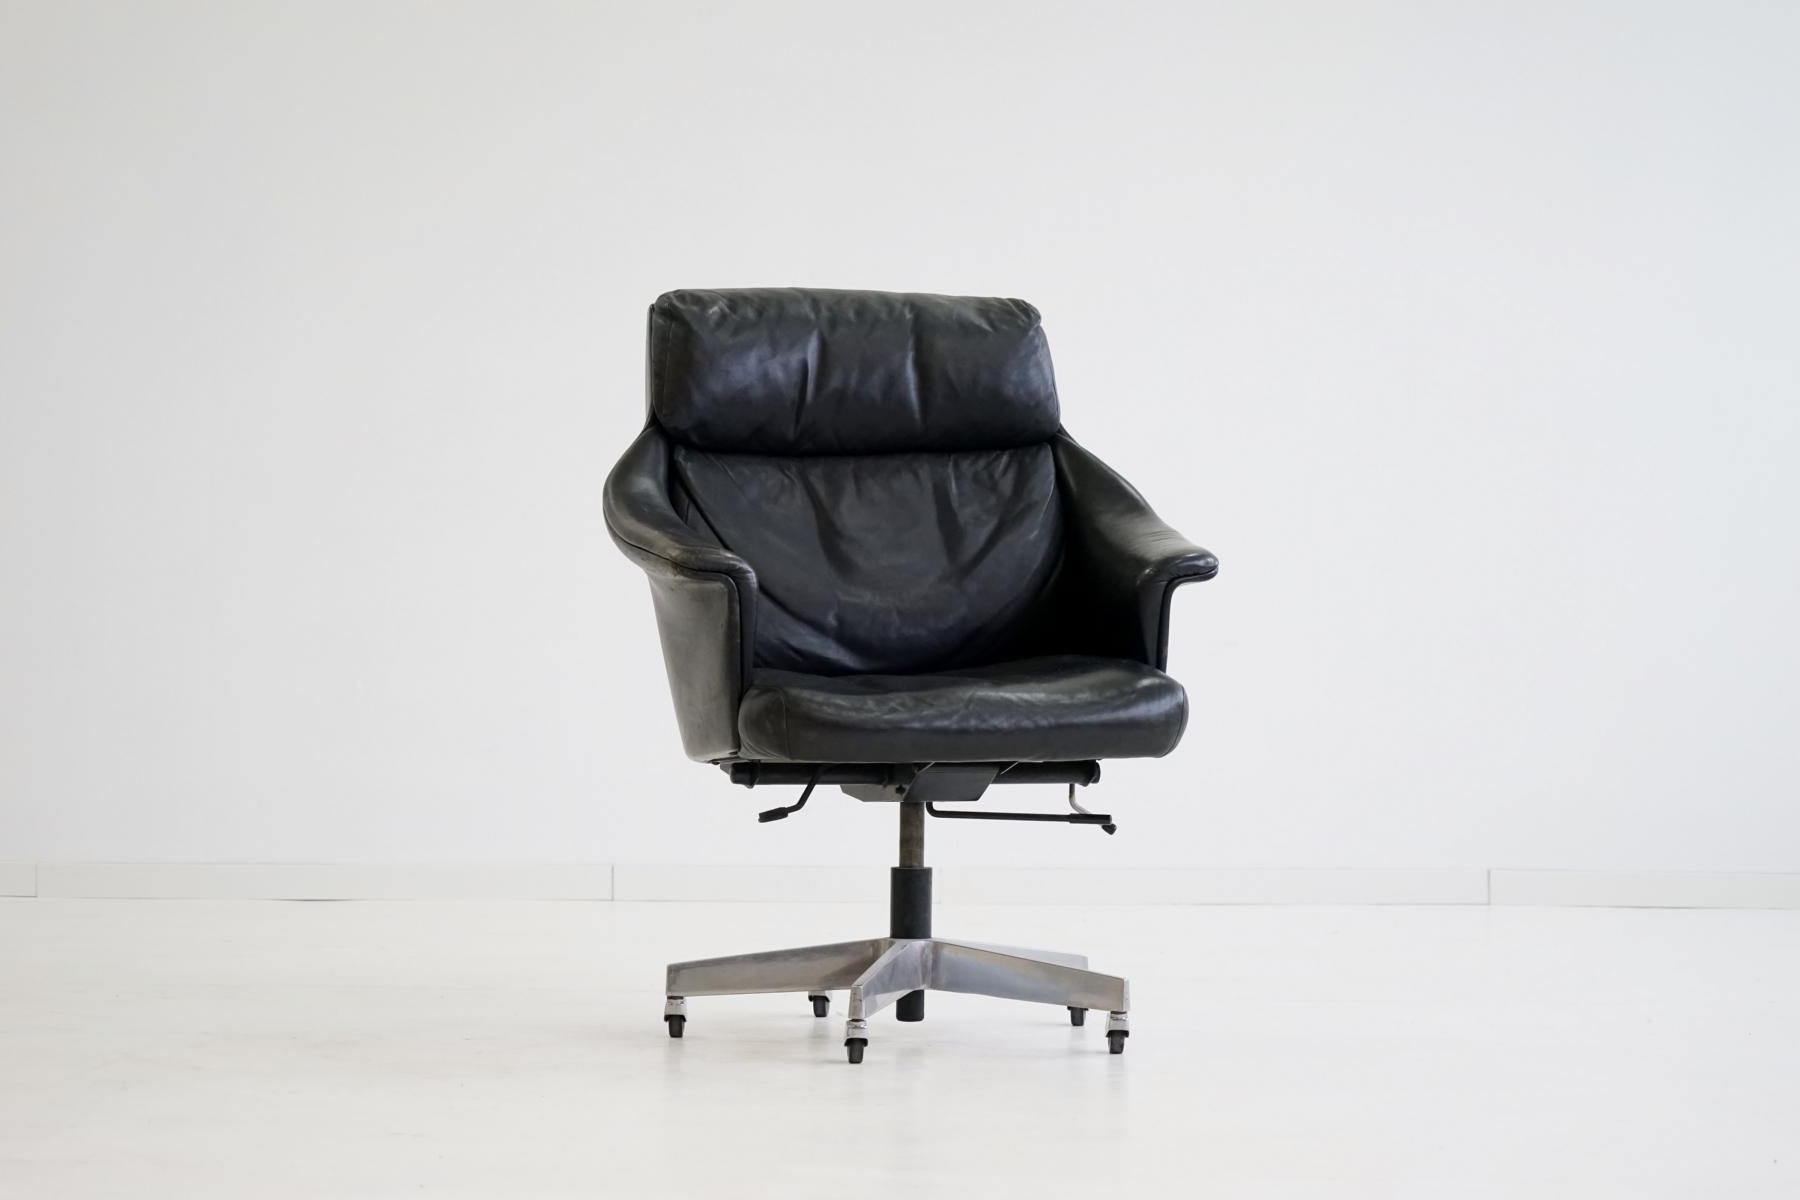 Giroflex Executive Office Chairmartin Stoll, 1960S For Sale At Within Current Italian Executive Office Chairs (View 5 of 20)